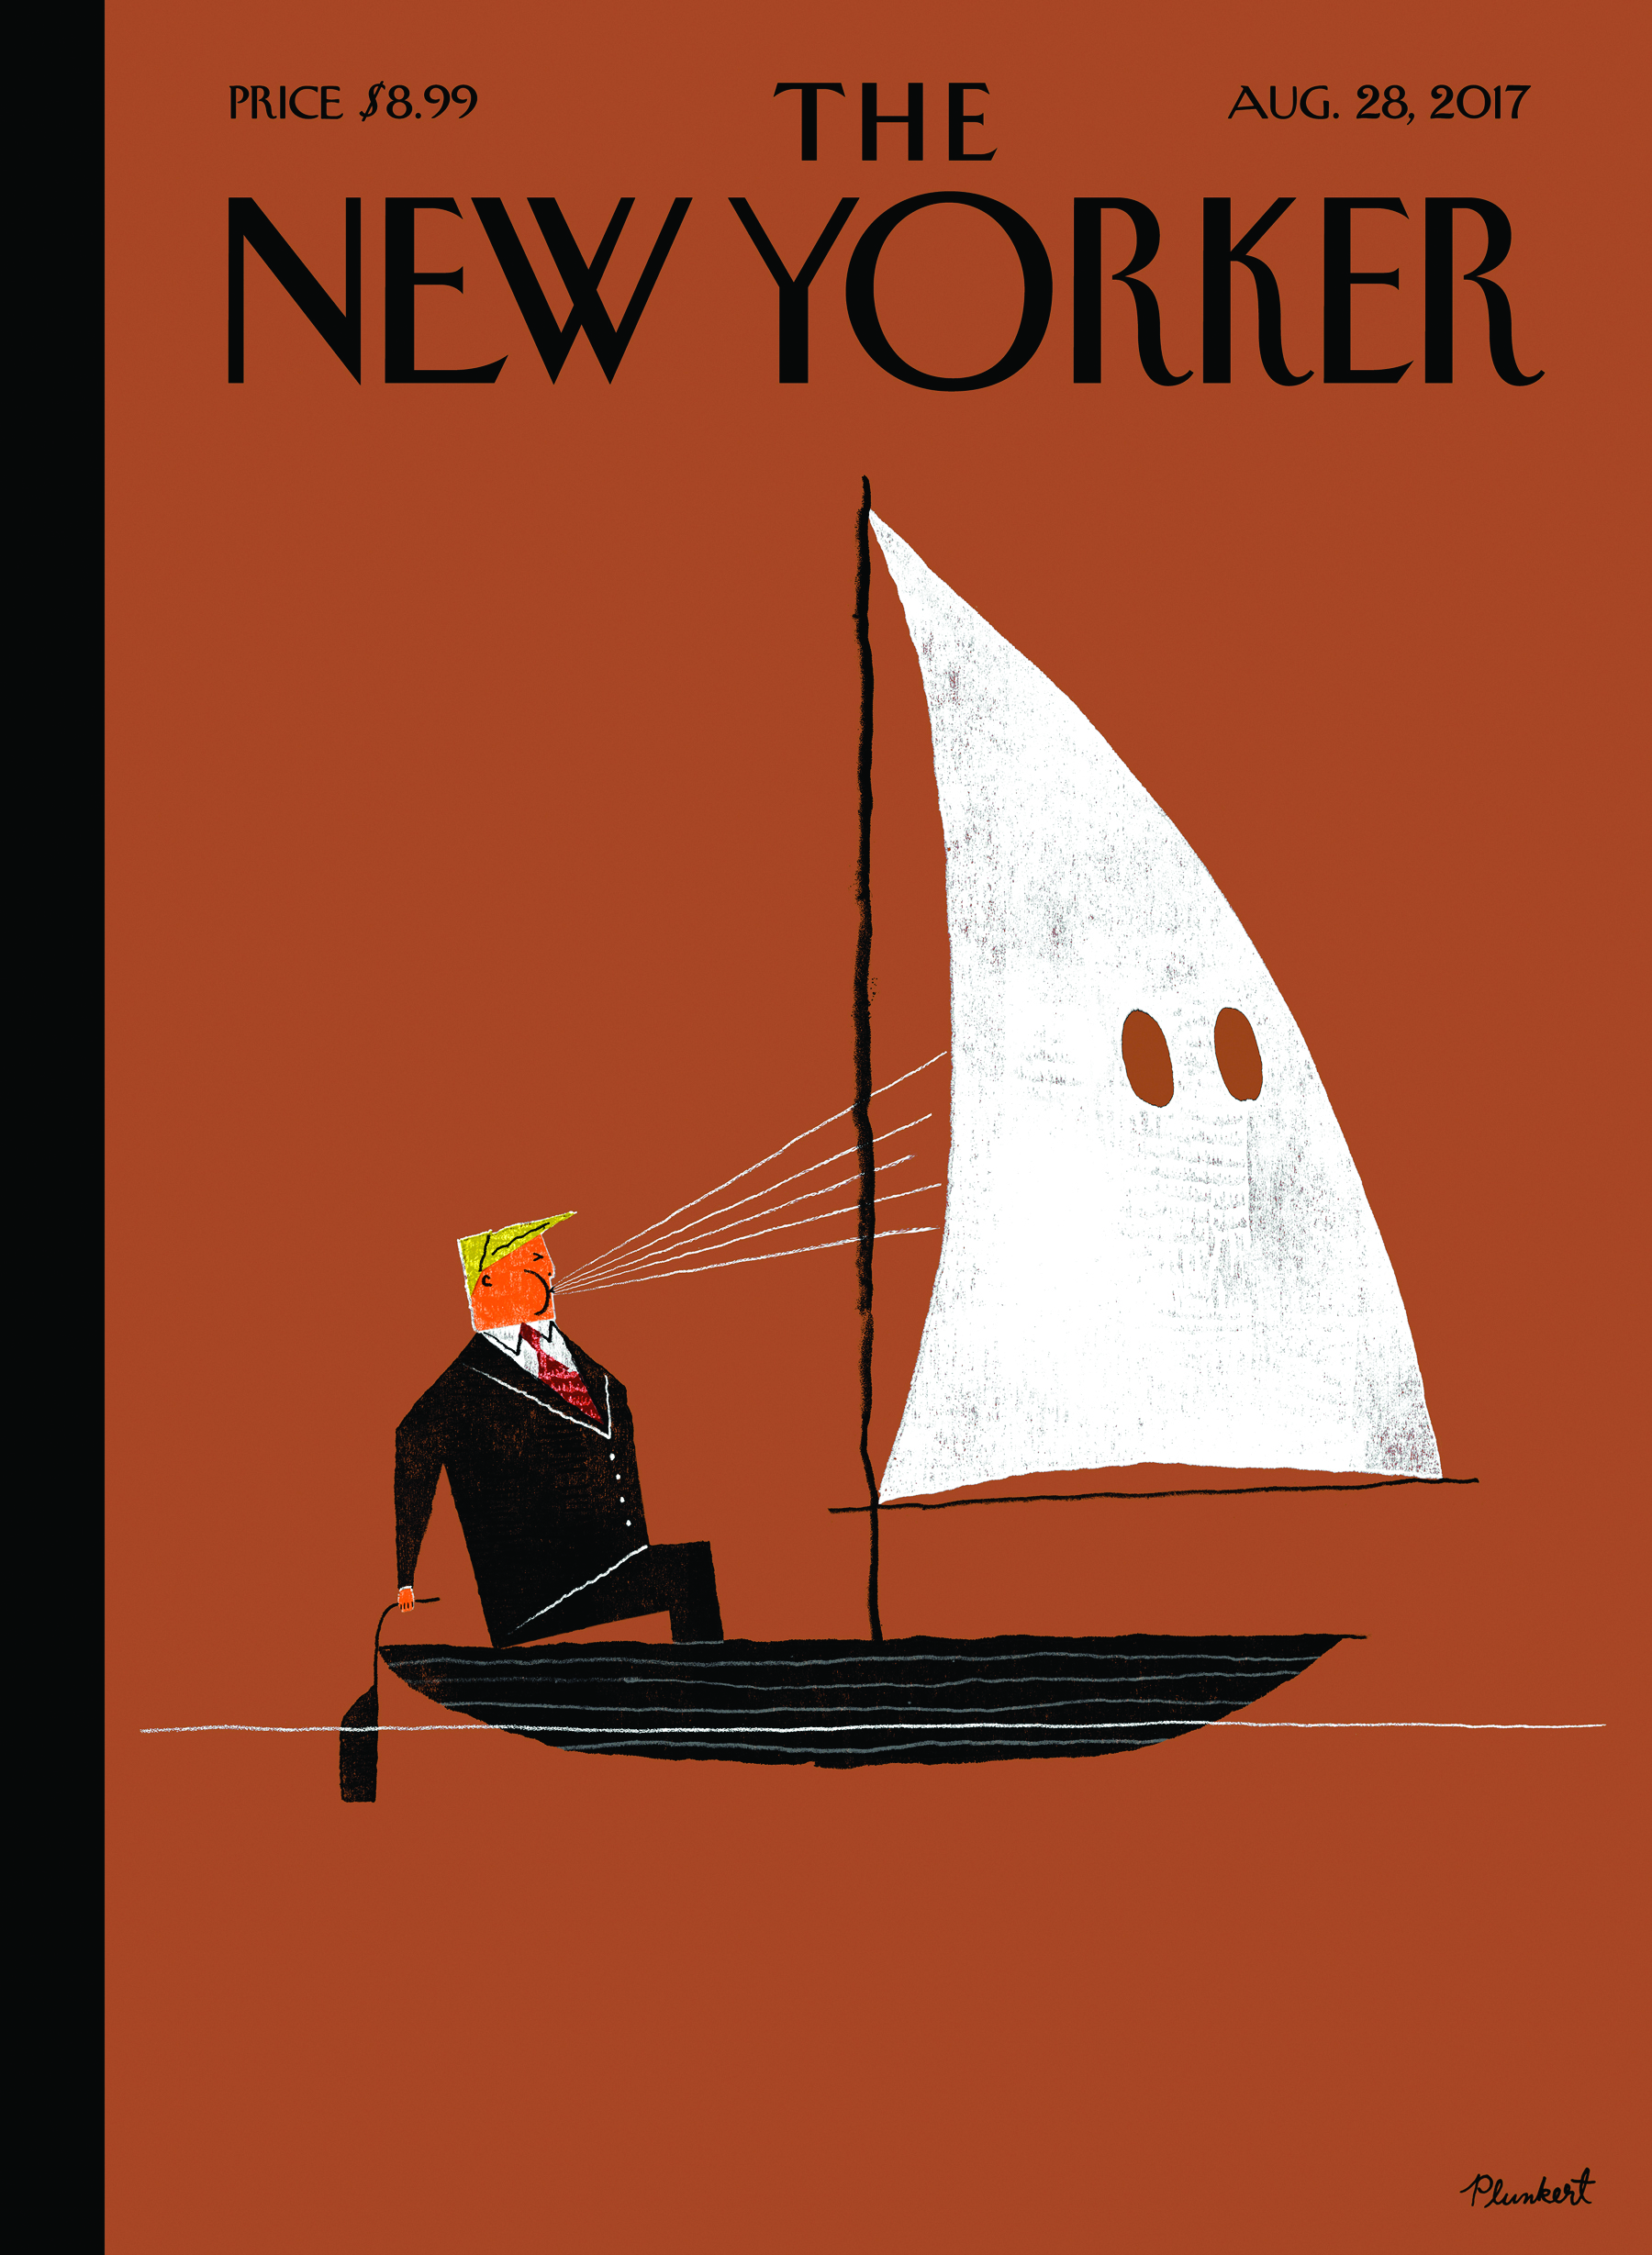 Submitted Plunkert_The New Yorker-300.jpg